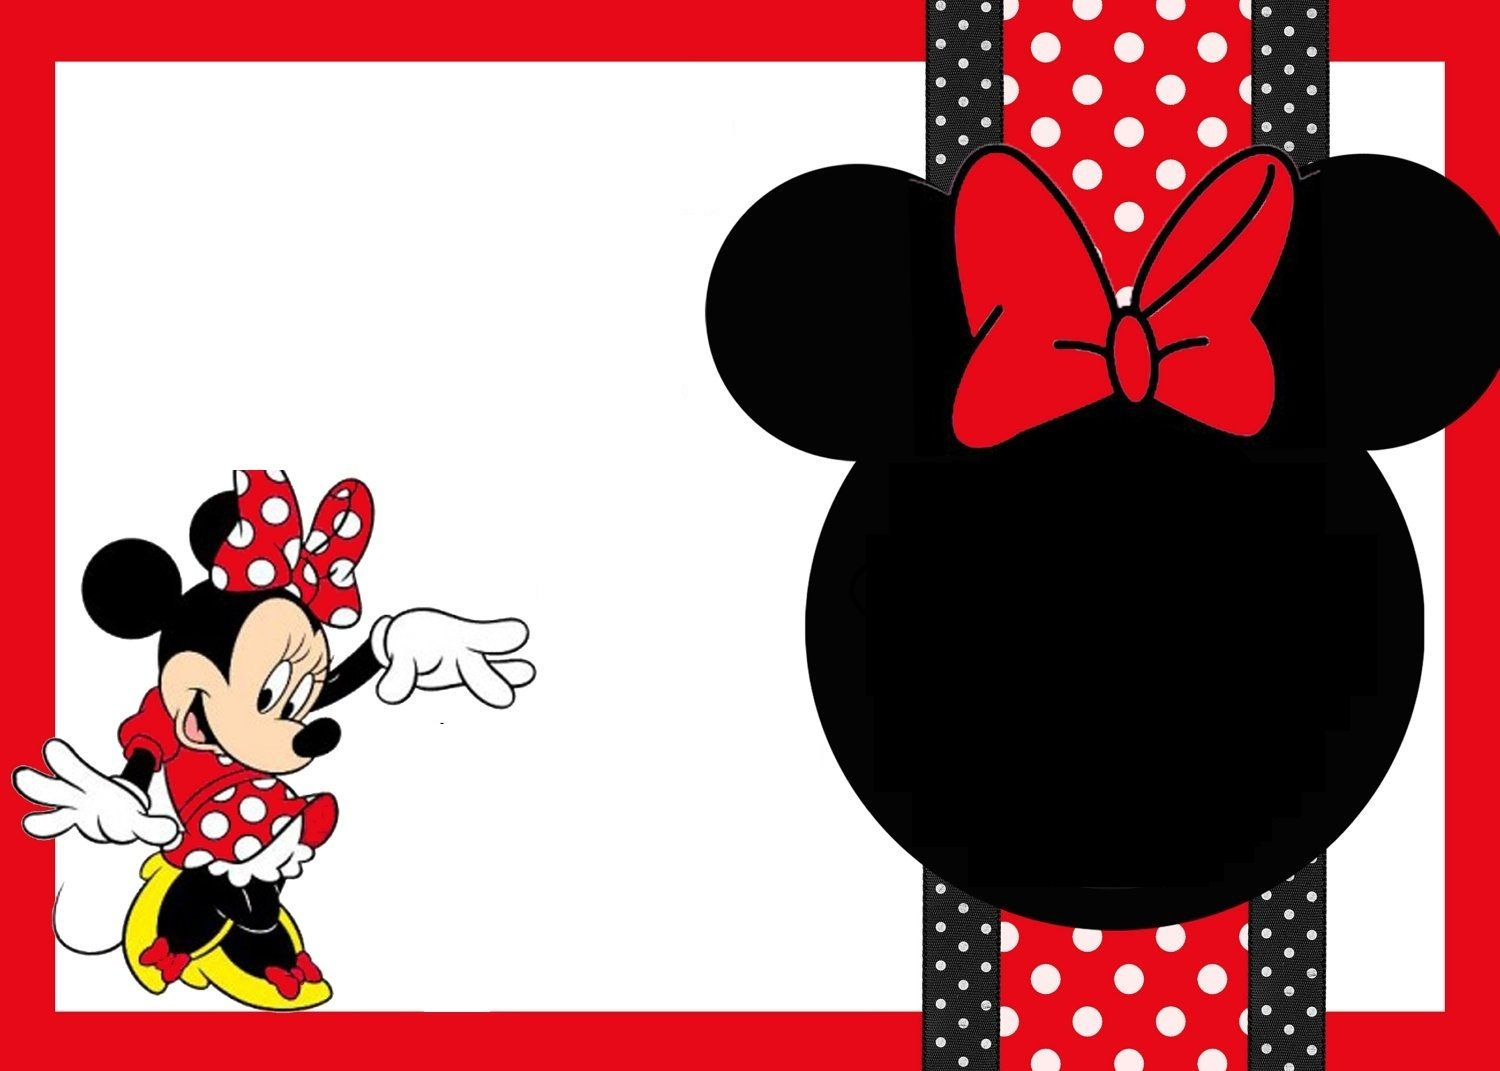 Free Printable Mickey Mouse Birthday Cards   Luxury Lifestyle - Free Printable Mickey Mouse Decorations